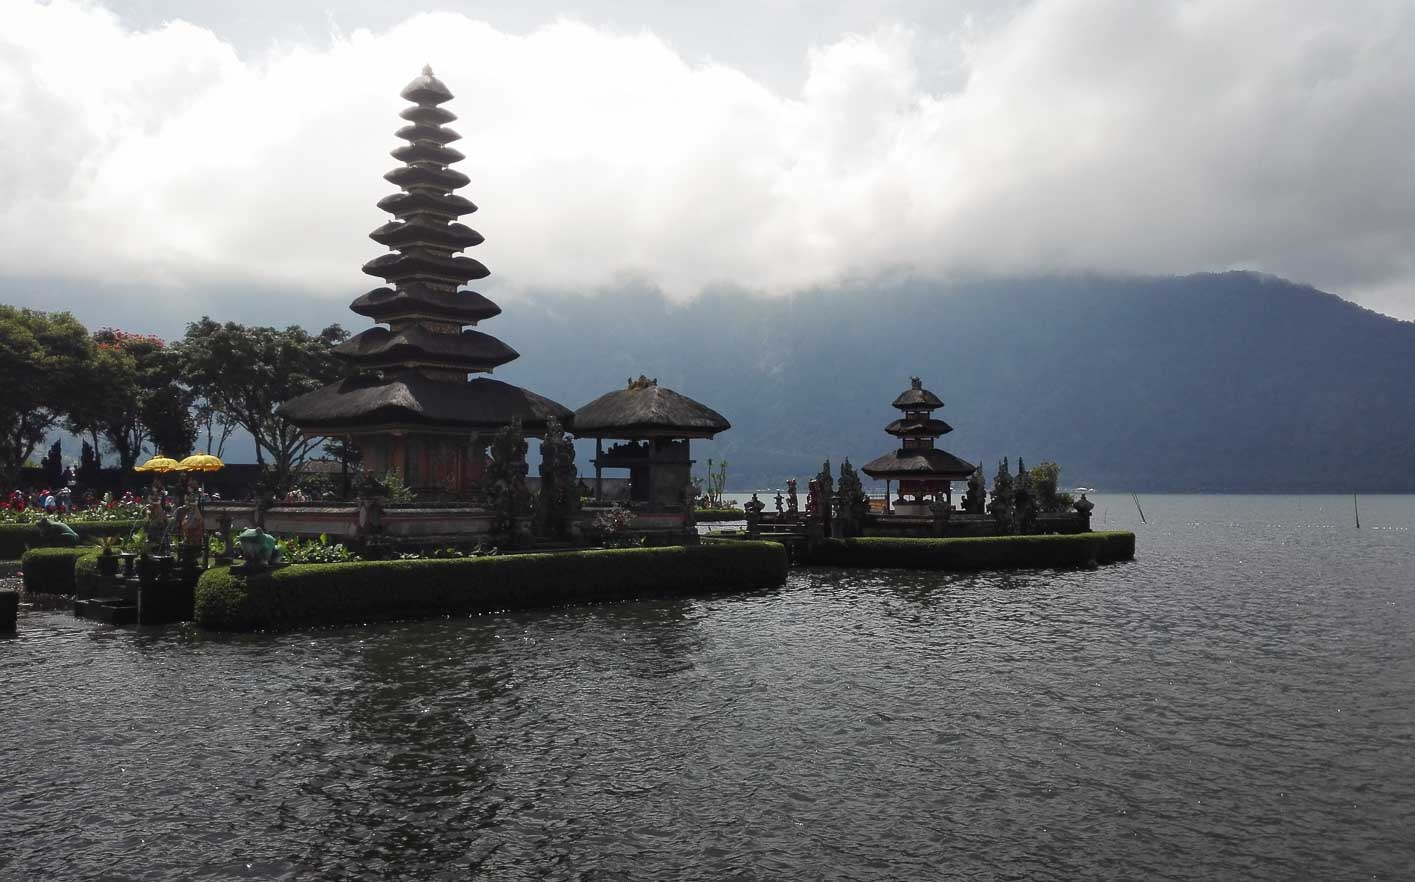 Pura Ulun Danu Temple on Lake Batran in Bali Indonesia